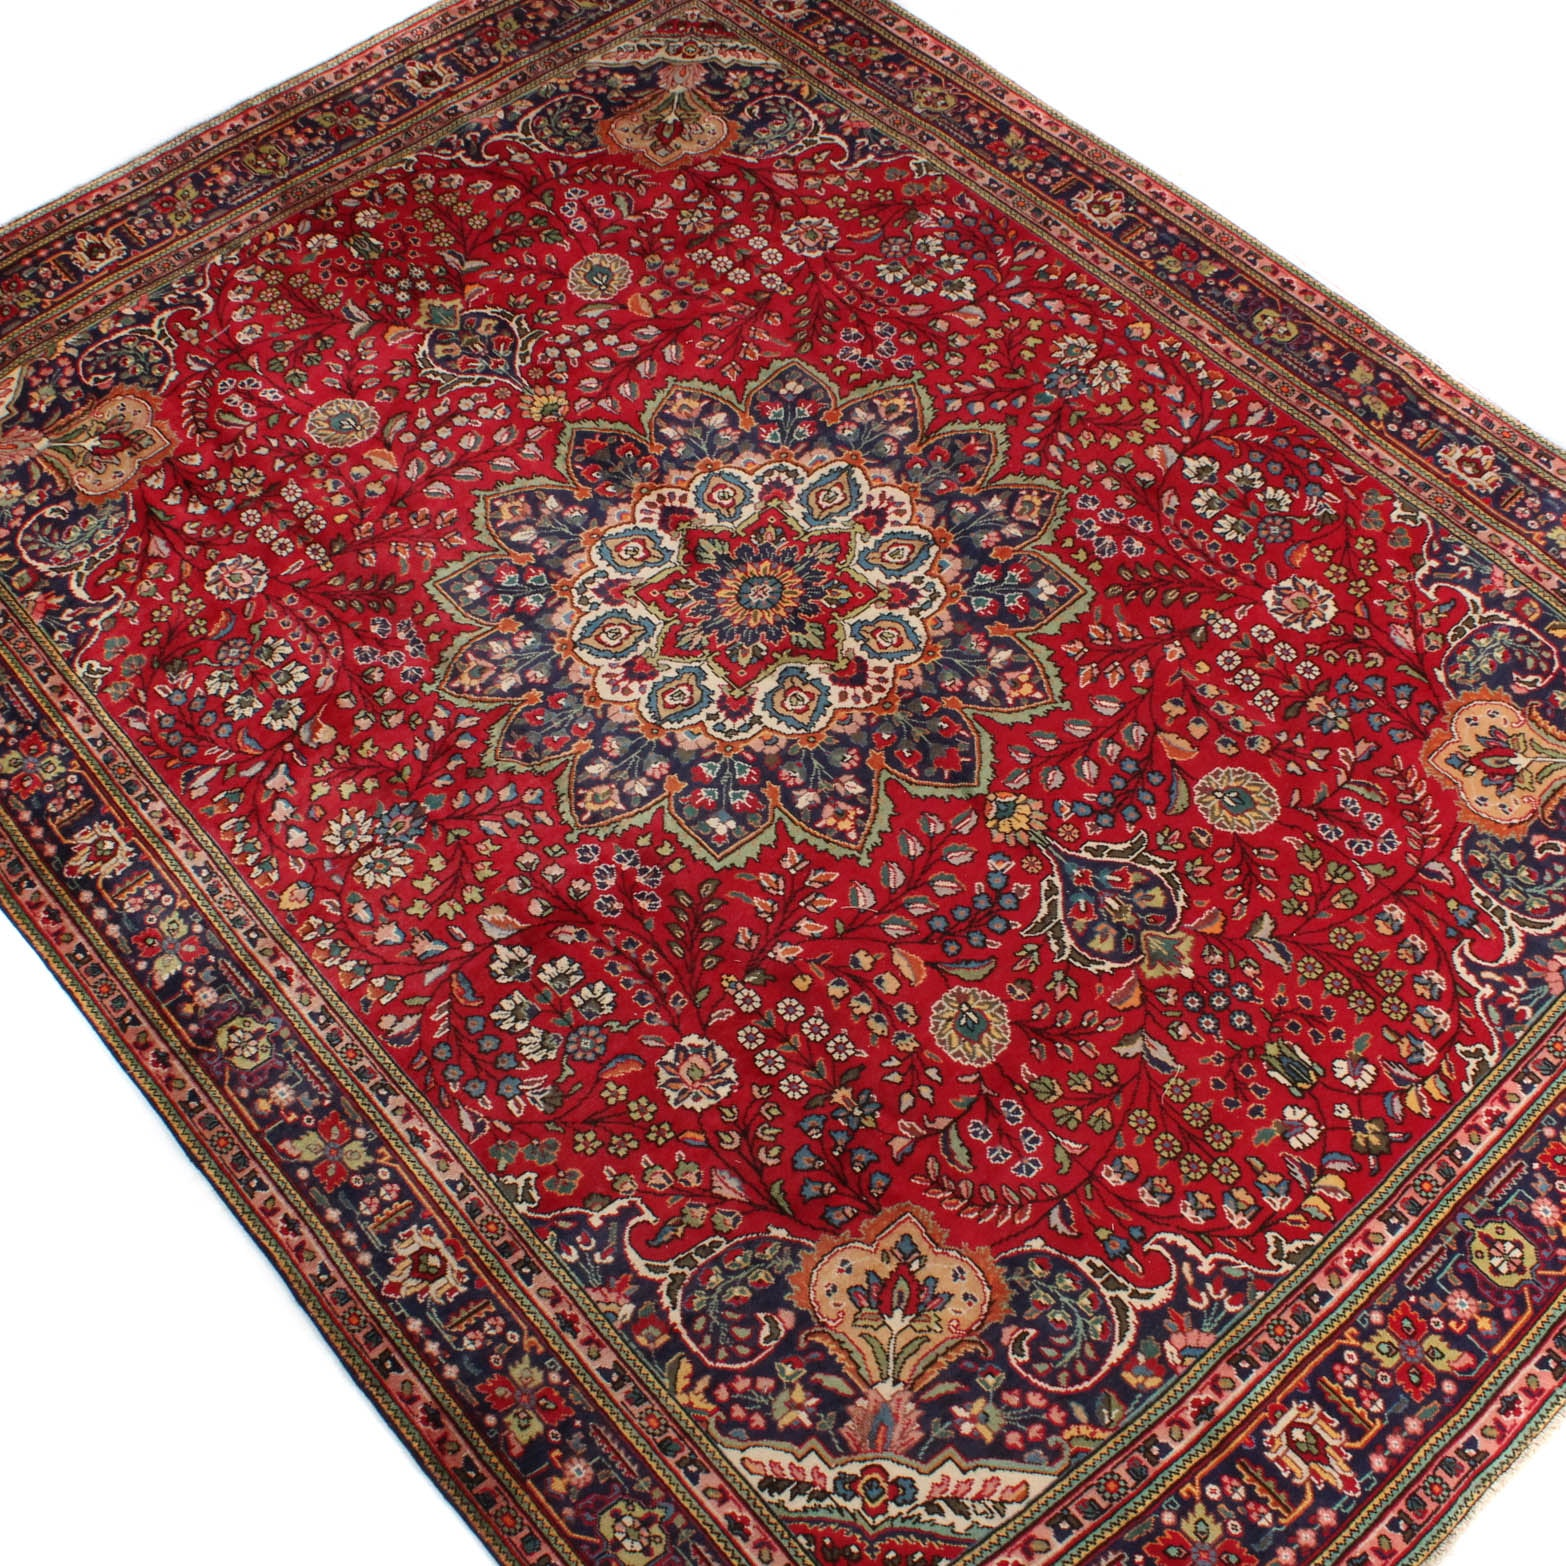 9' x 12' Vintage Hand-Knotted Persian Ghombad Room Size Rug